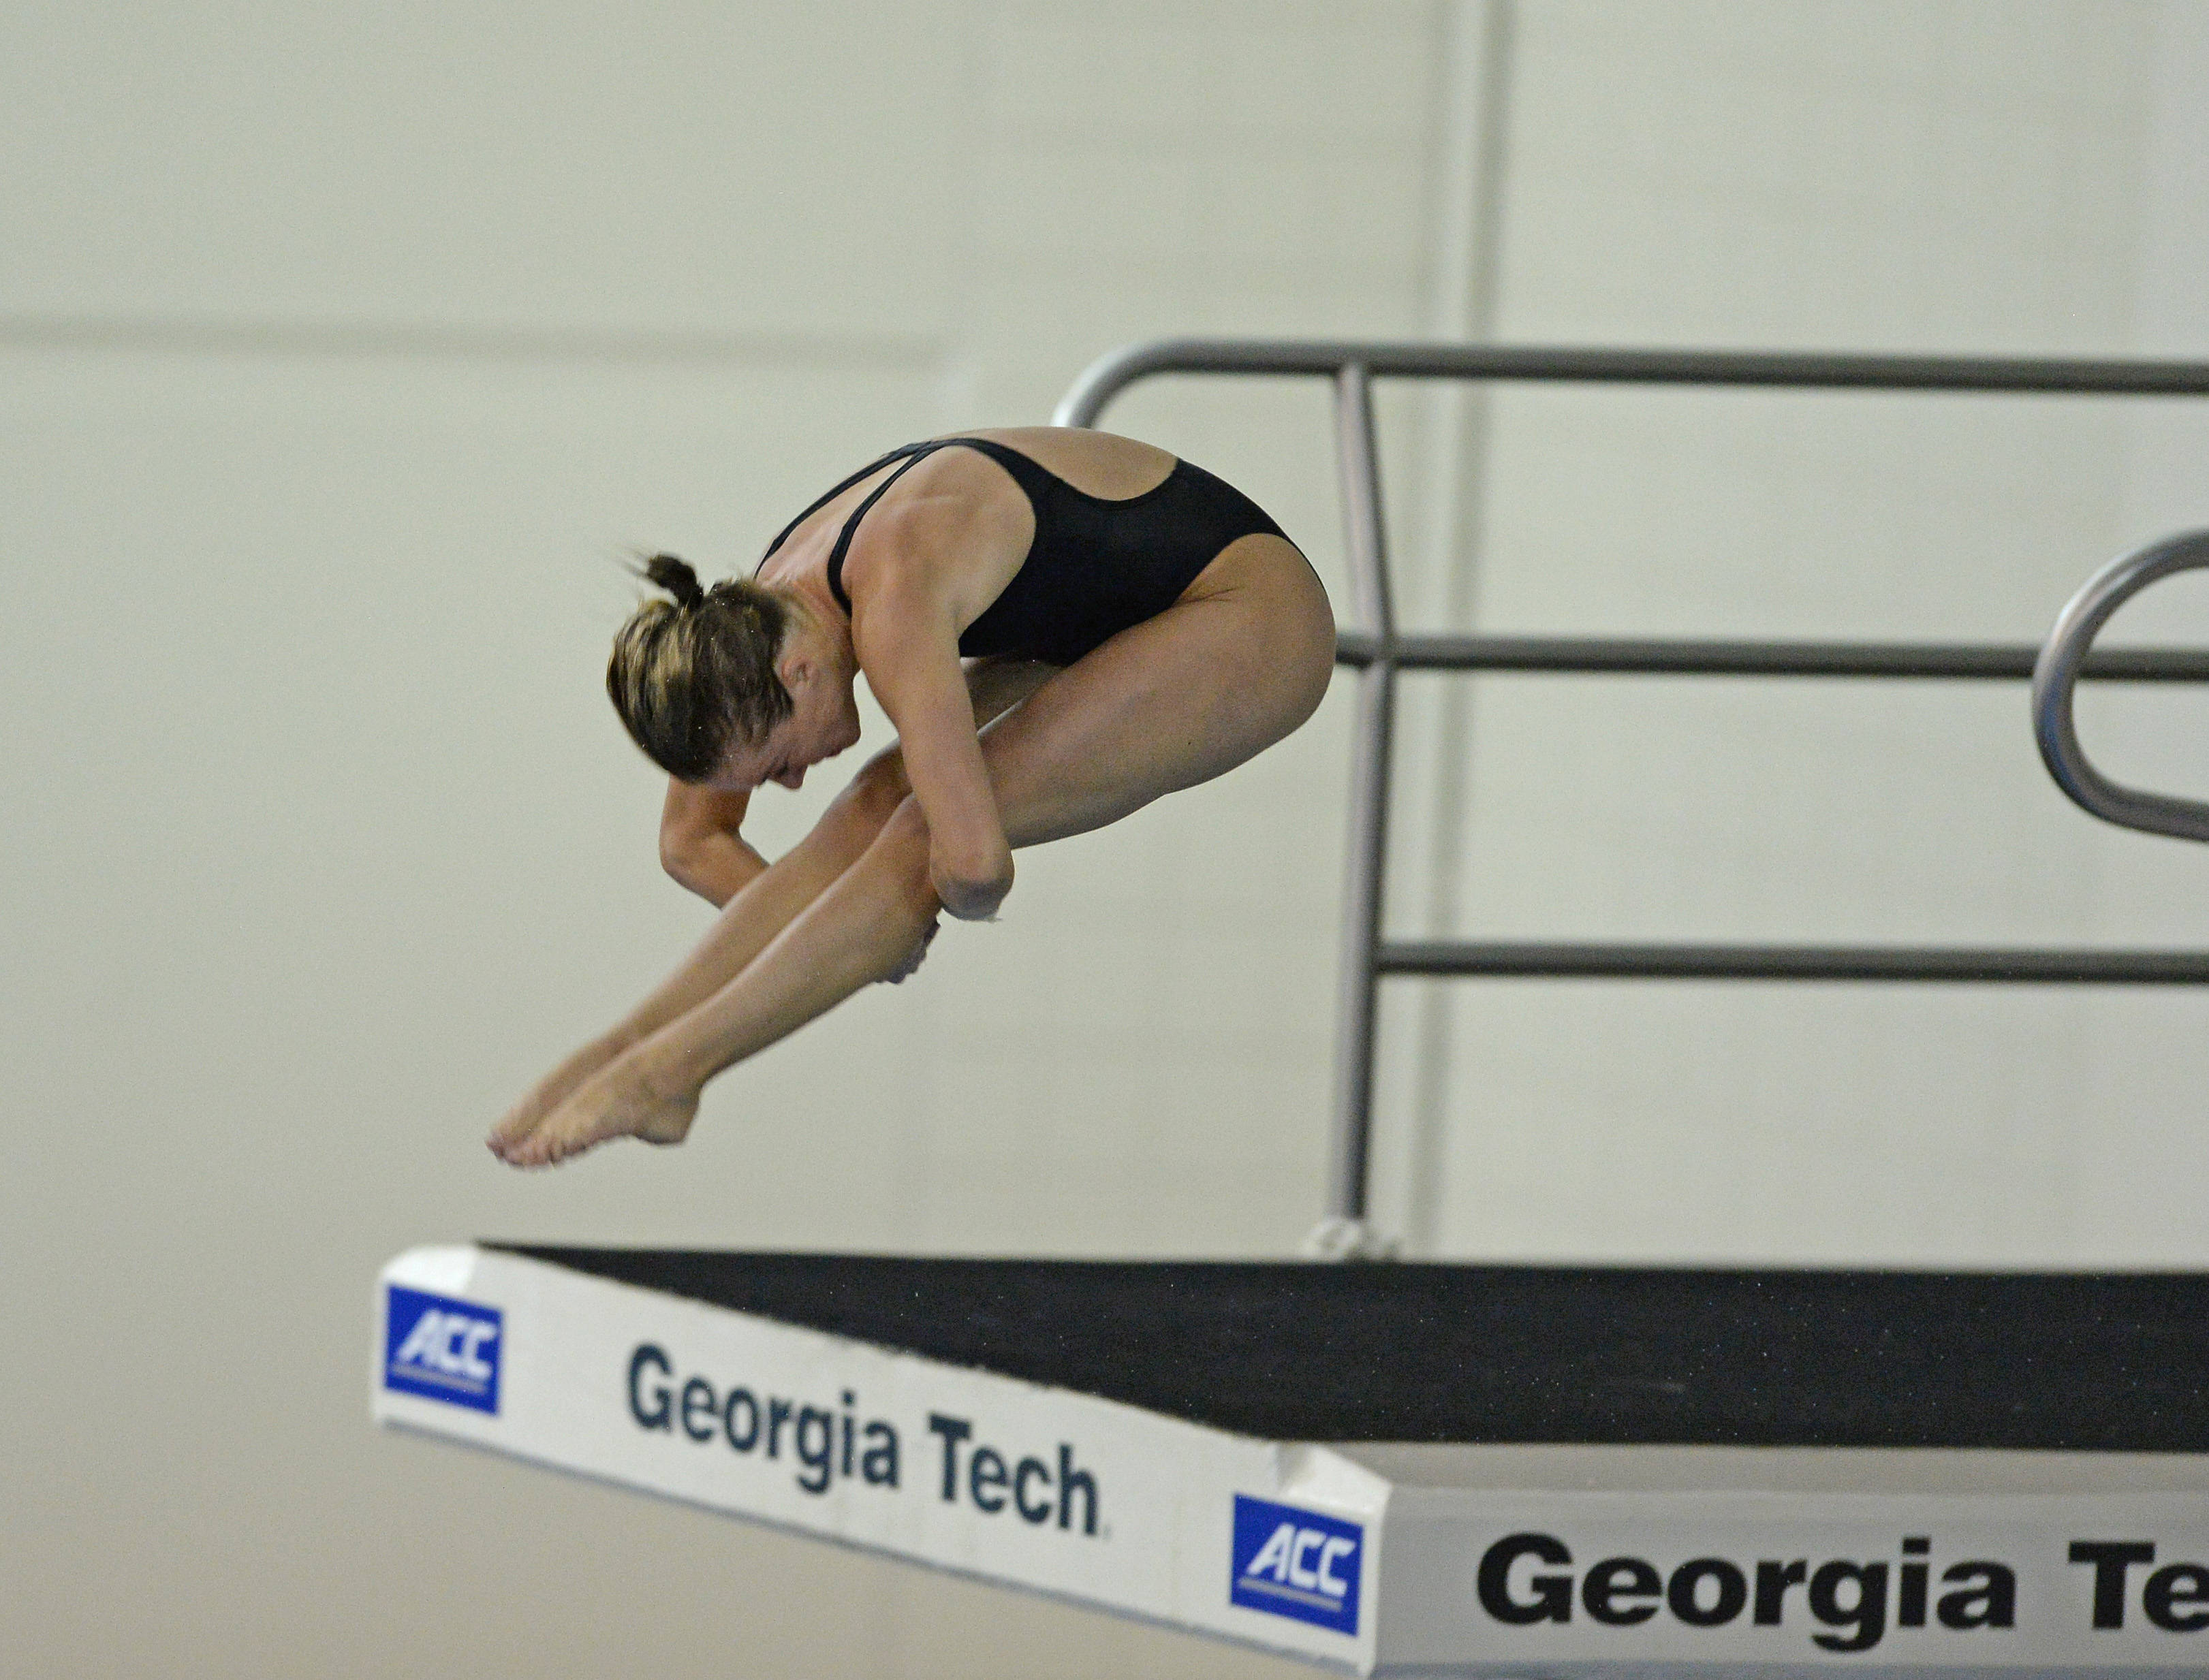 Katrina Young takes off for her front 2.5 in the platform final - Mitch White